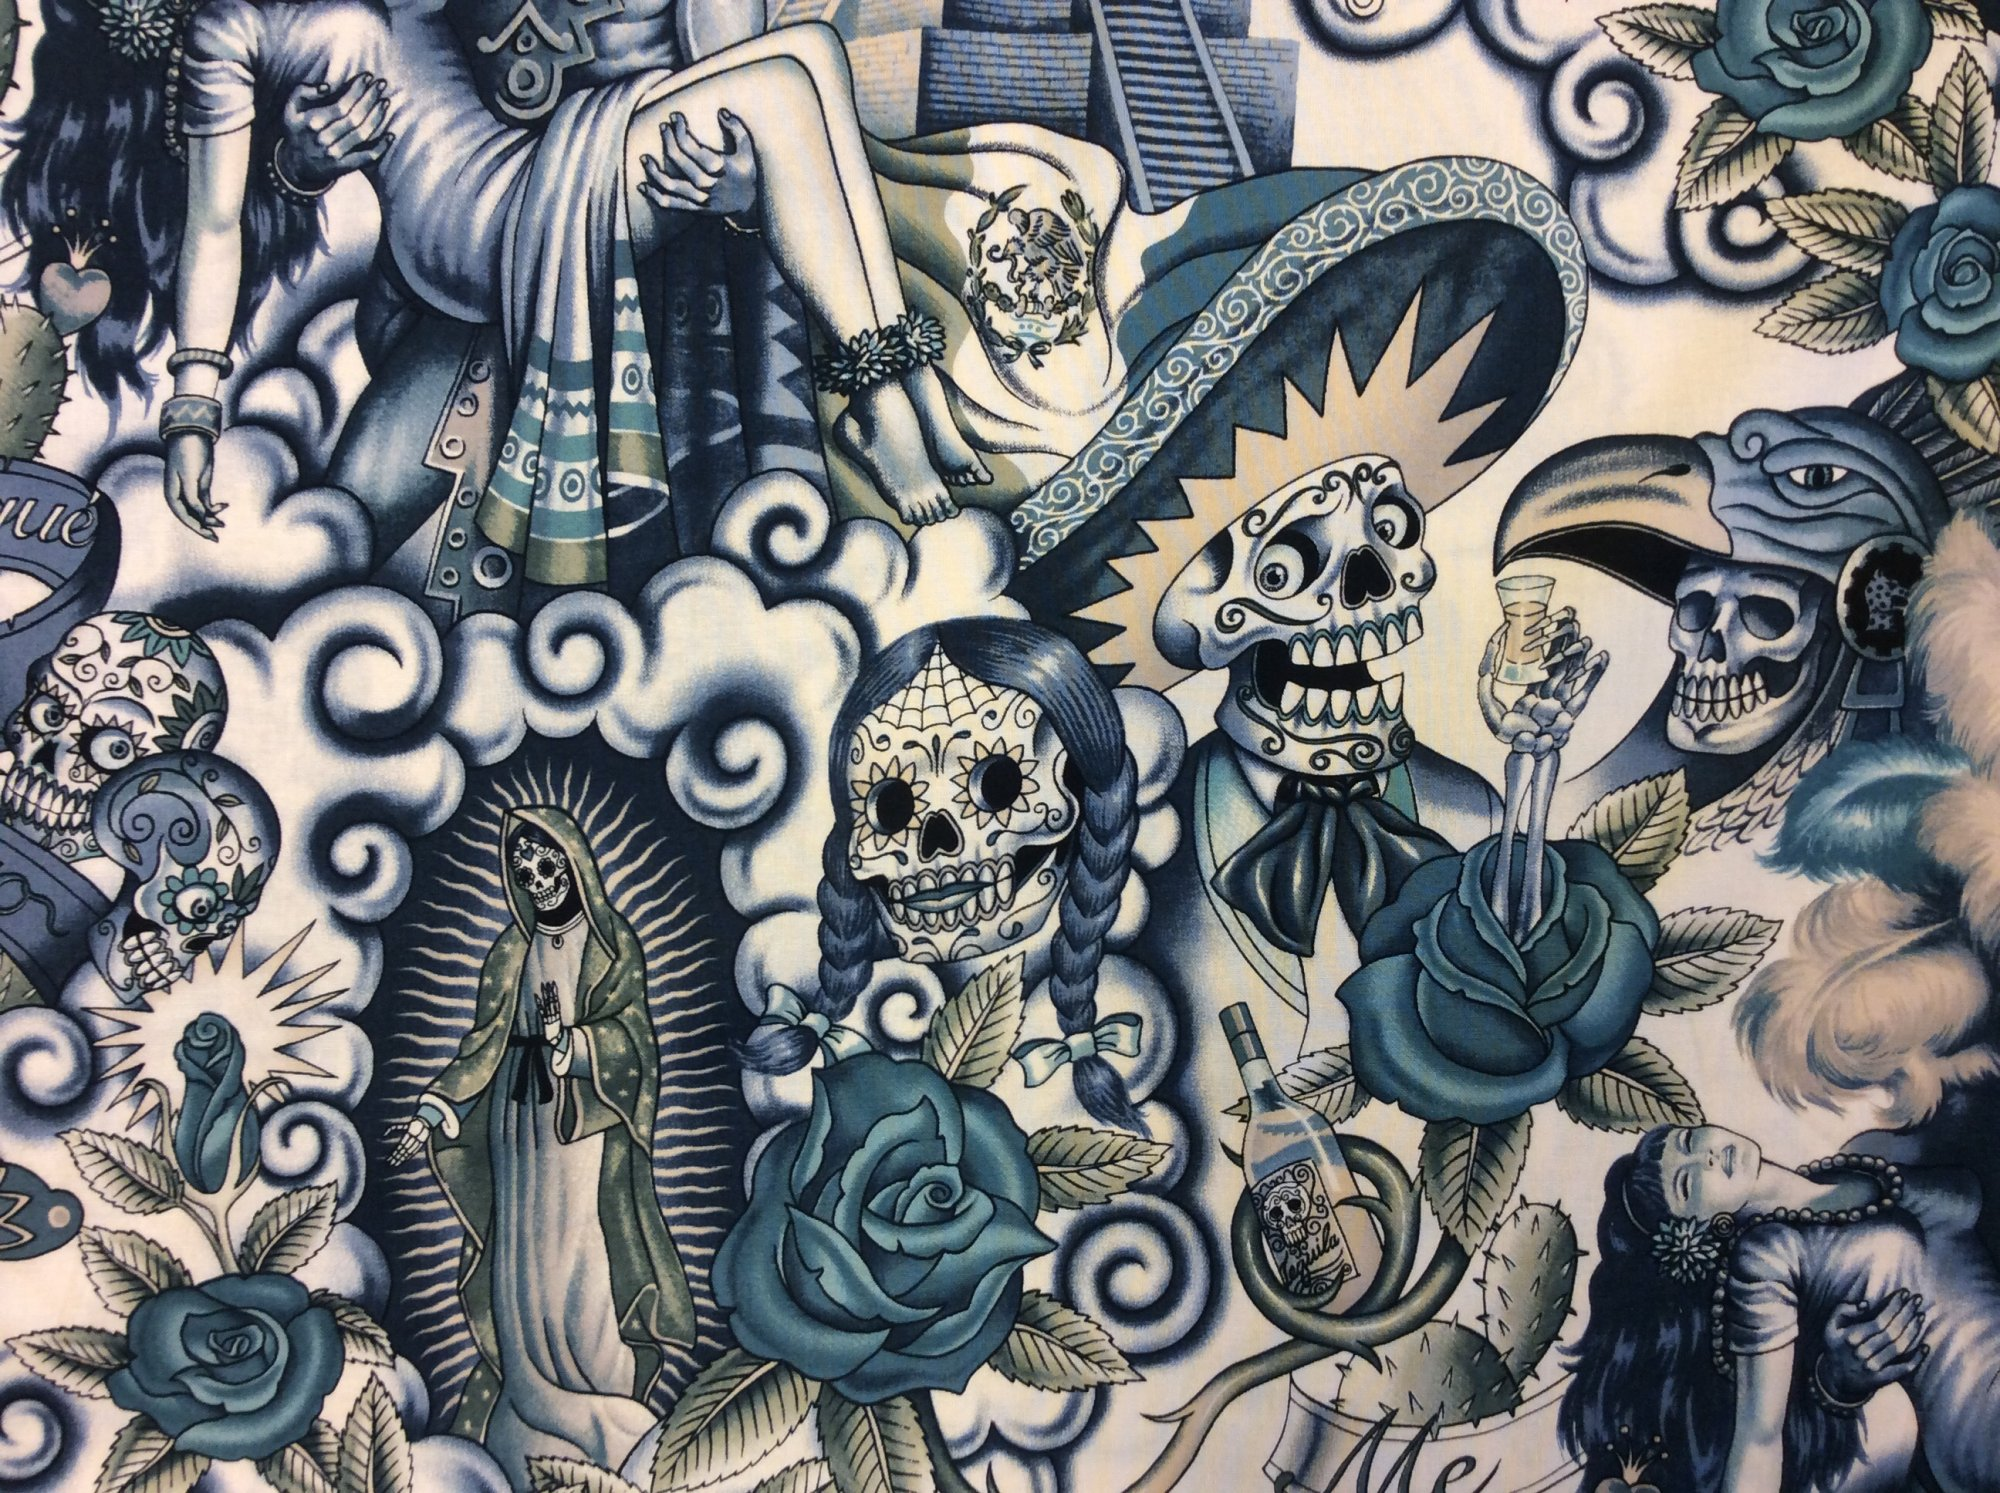 AH131 Mexico Indigo Sepia Tone Contigo Indian Aztec Guadalupe Skeleton Day of the Dead Skull Roses Sombrero Cream Cotton fabric Quilt fabric